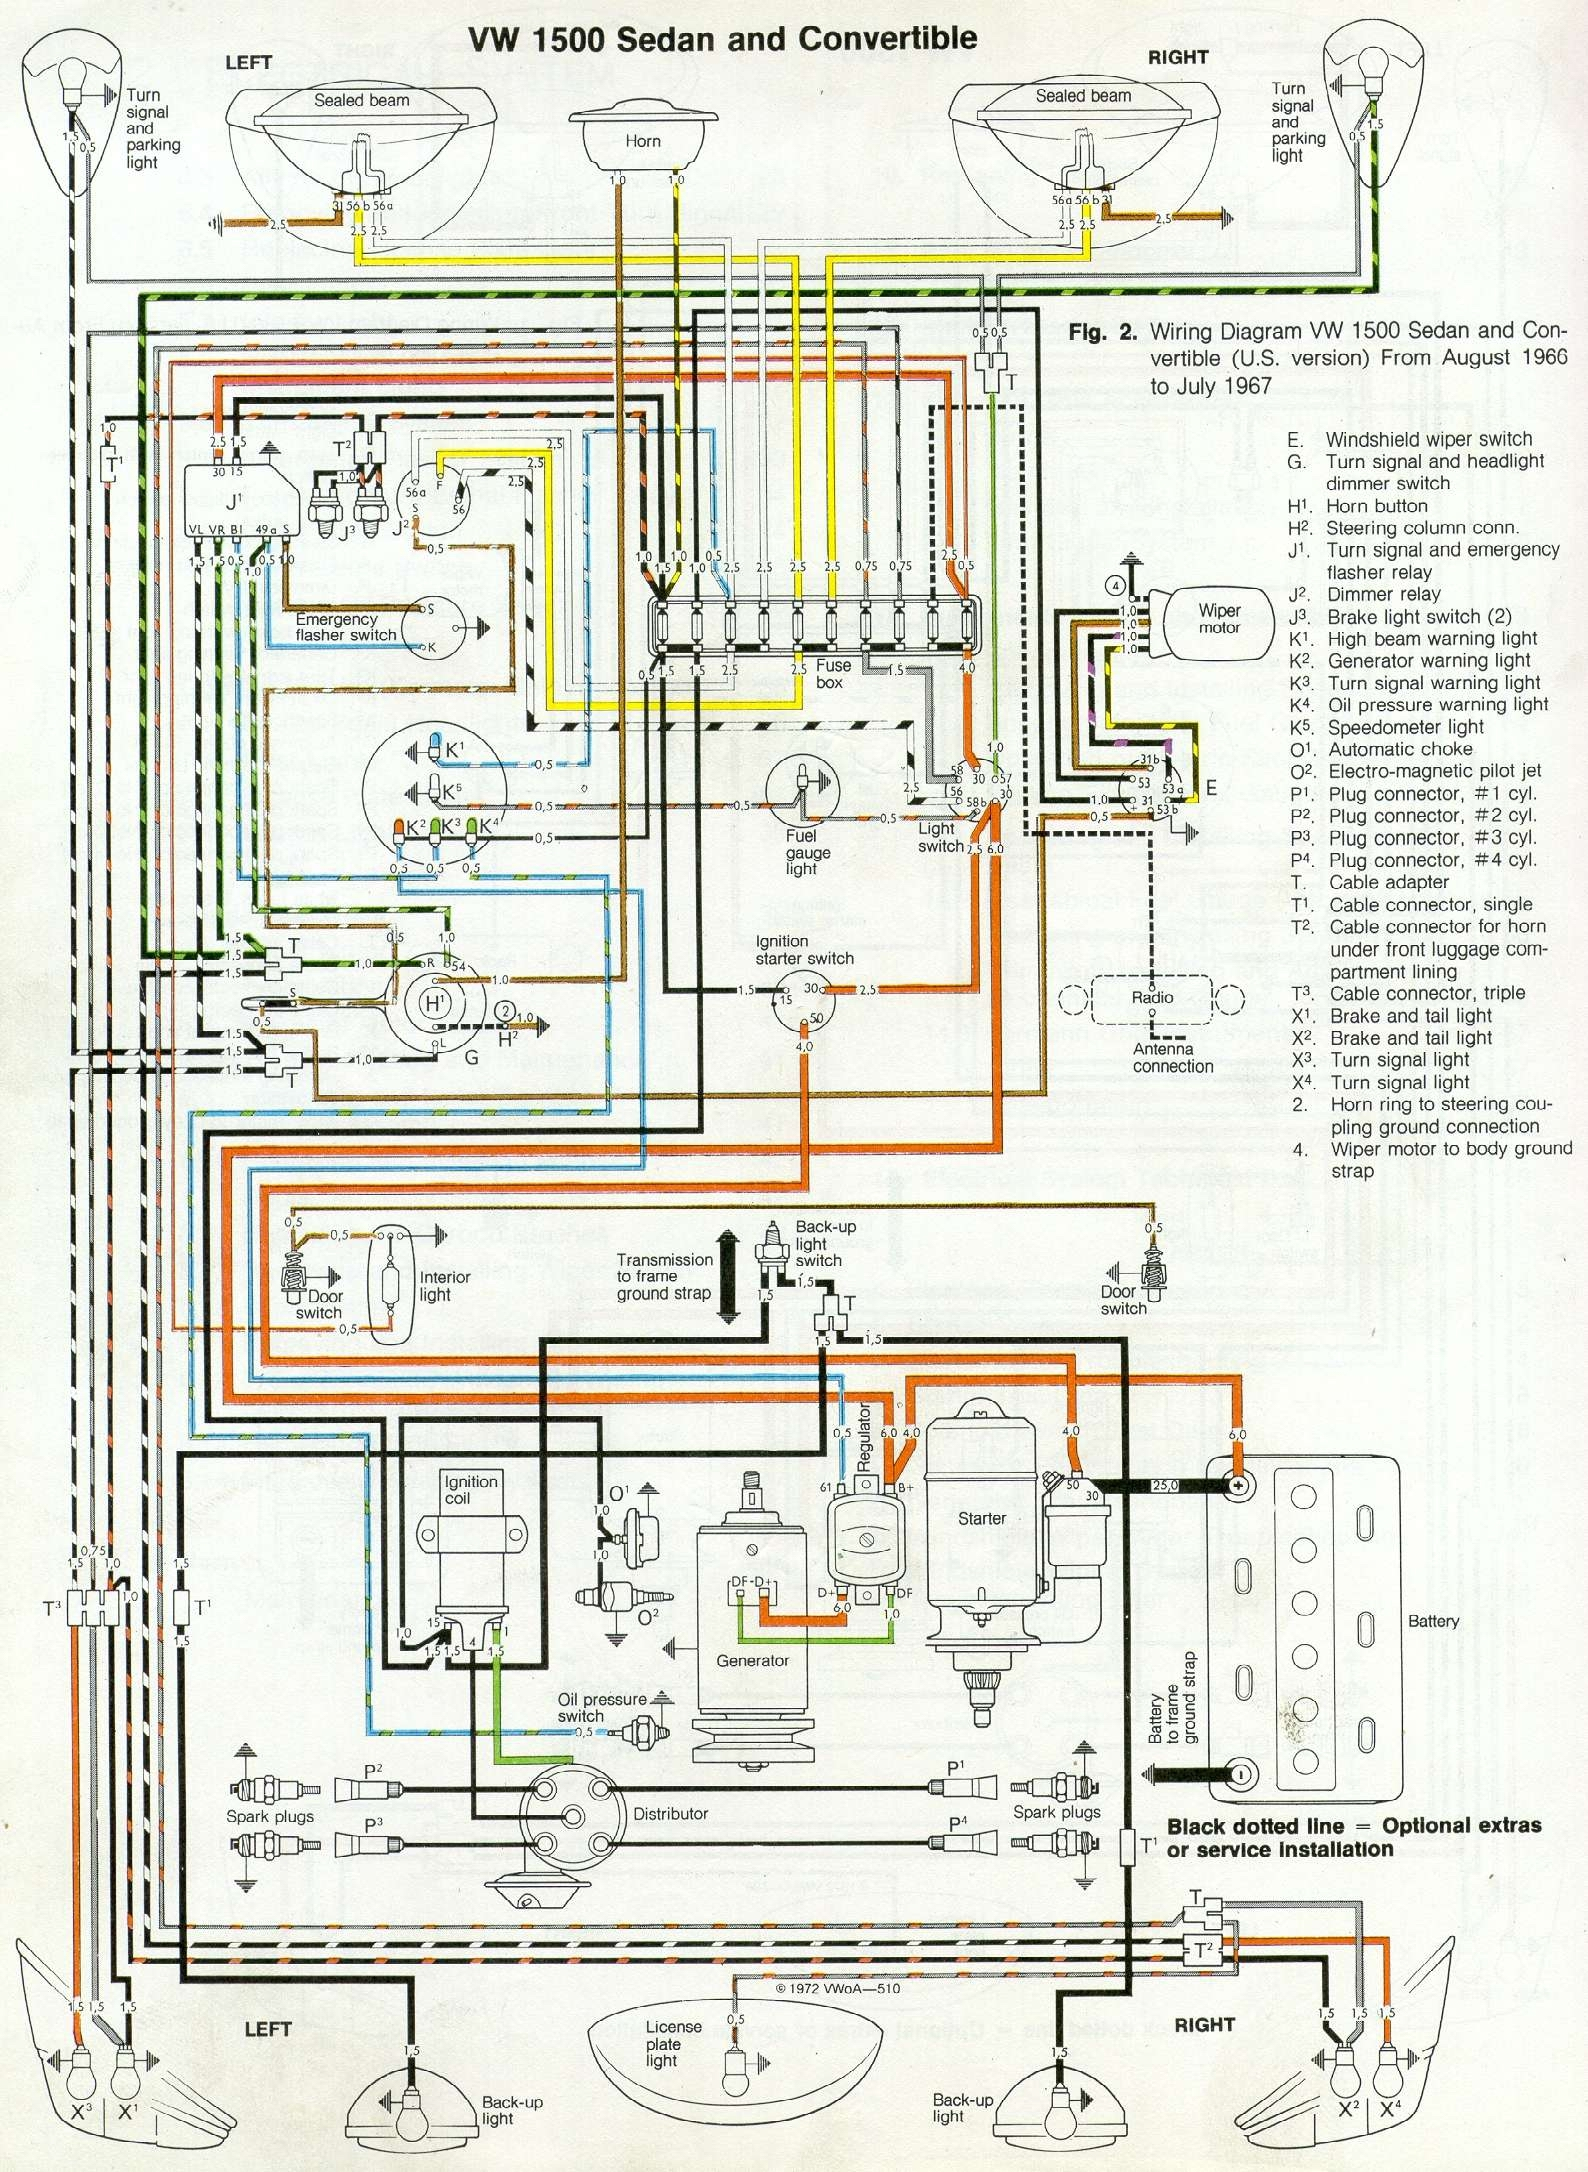 Vw Electrical Diagram Wiring Data Schematic 2008 Beetle Diagrams Free Download 66 And 67 1967 Rh 1967beetle Com